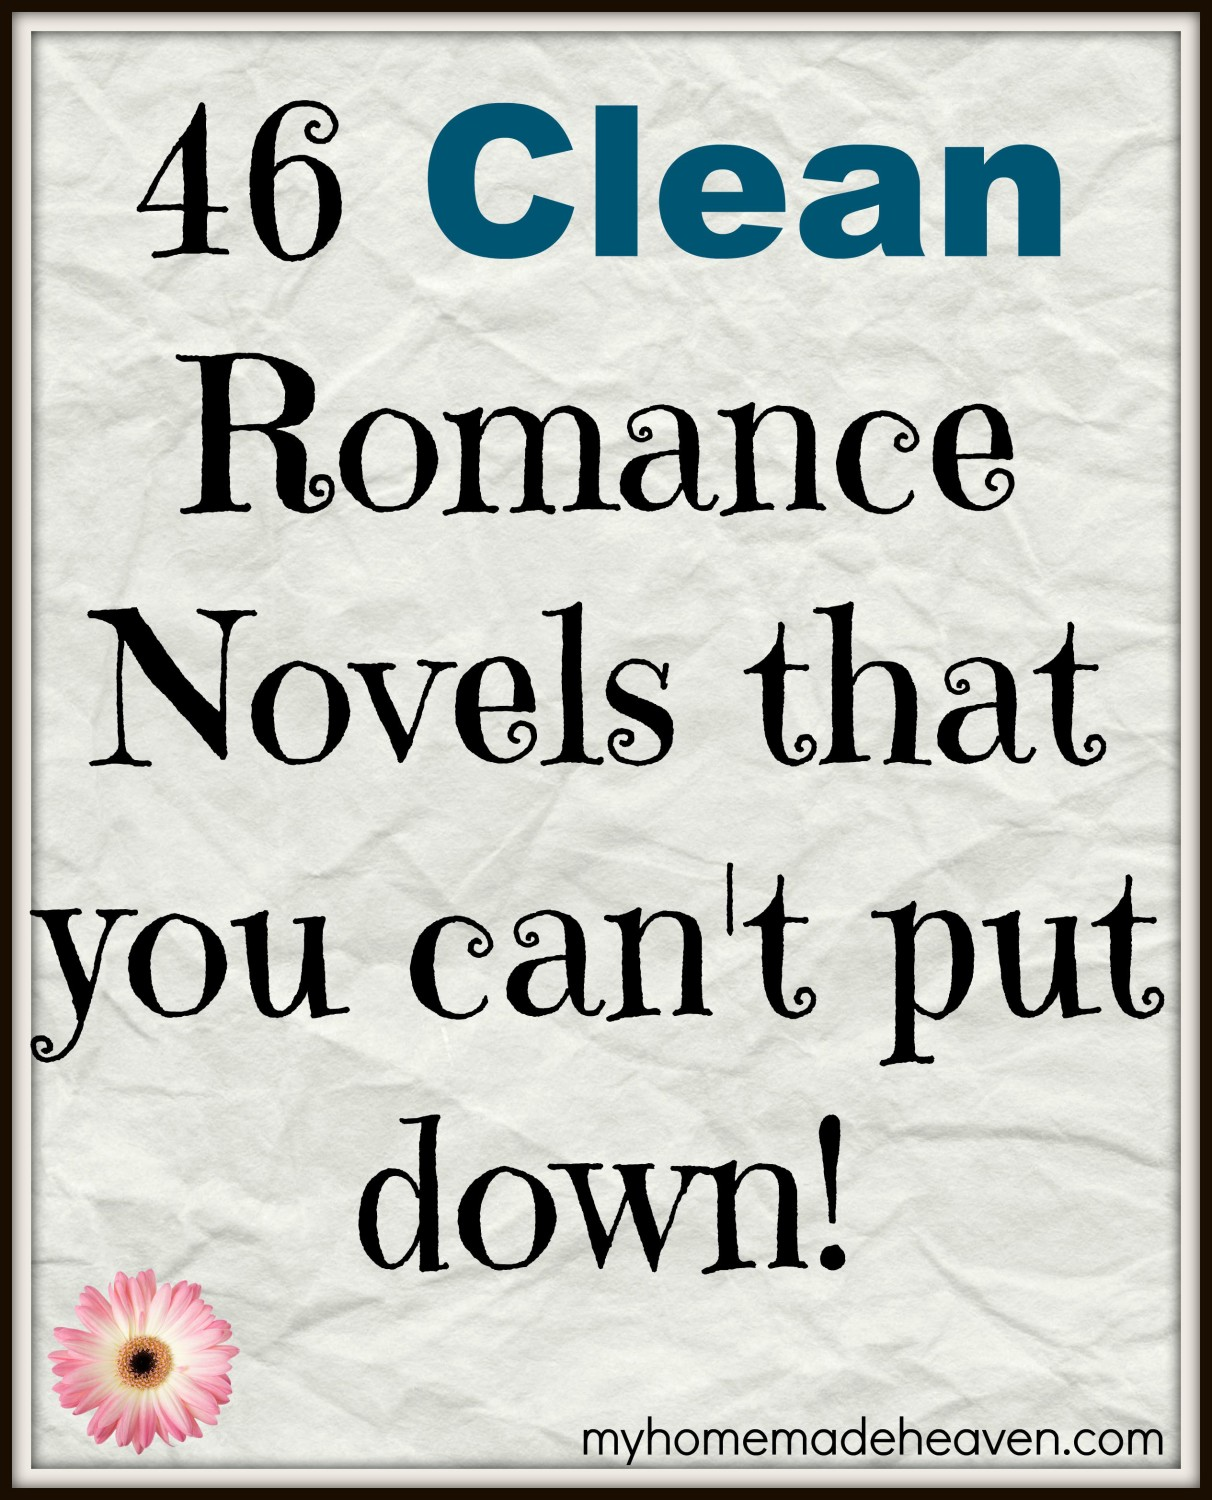 46 Clean Romance Novels That You Can't Put Down!